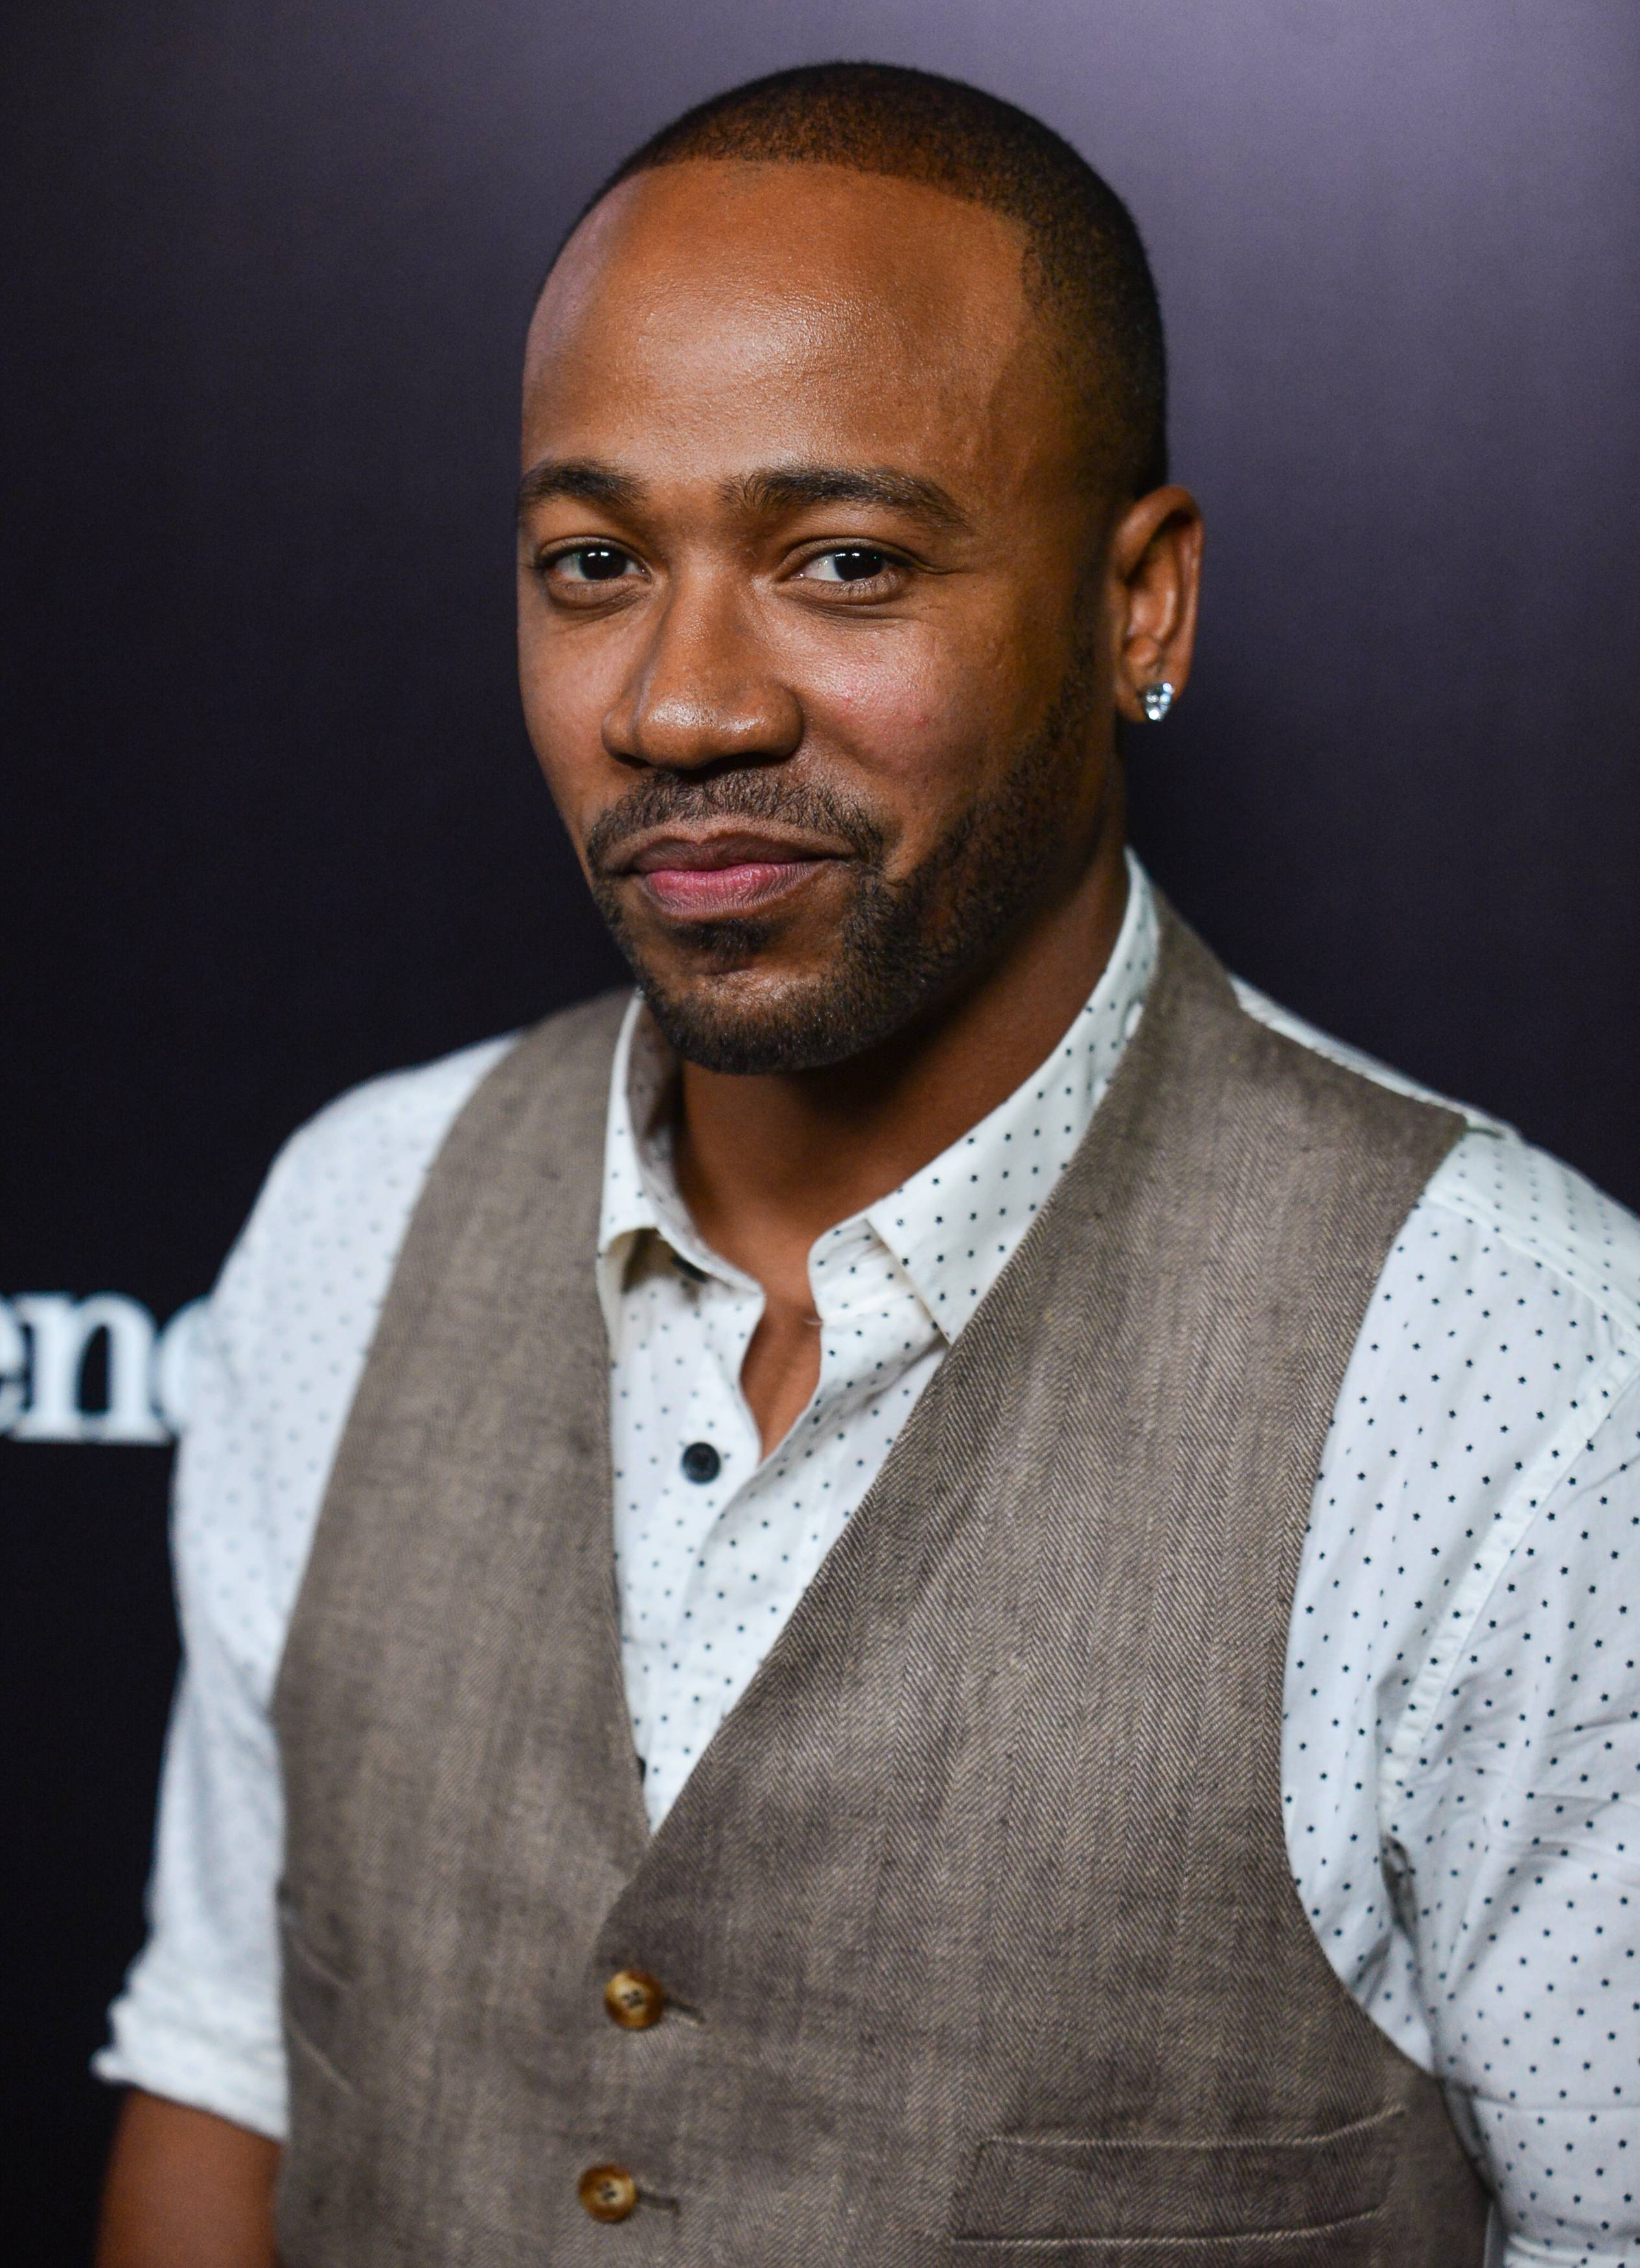 "Columbus Short won't be returning to ""Scandal"" following his legal troubles. The 31-year-old actor says in a statement on Friday, he's exiting the ABC political thriller after three seasons."